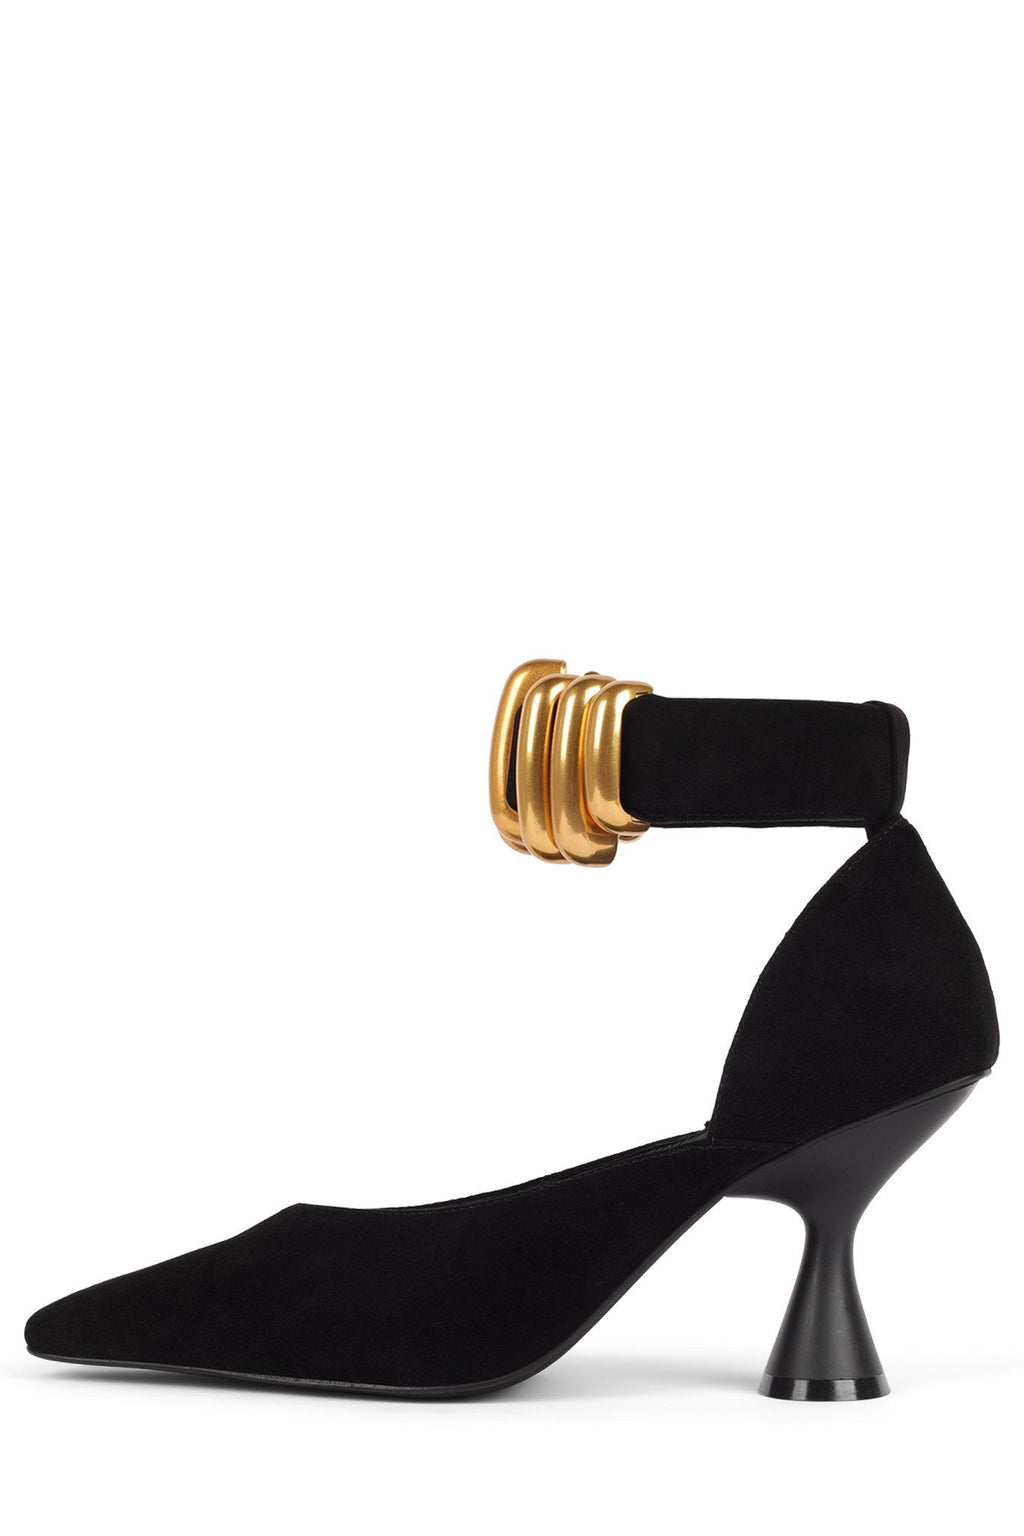 GAMME-LNK Pump STRATEGY Black Suede Gold 6